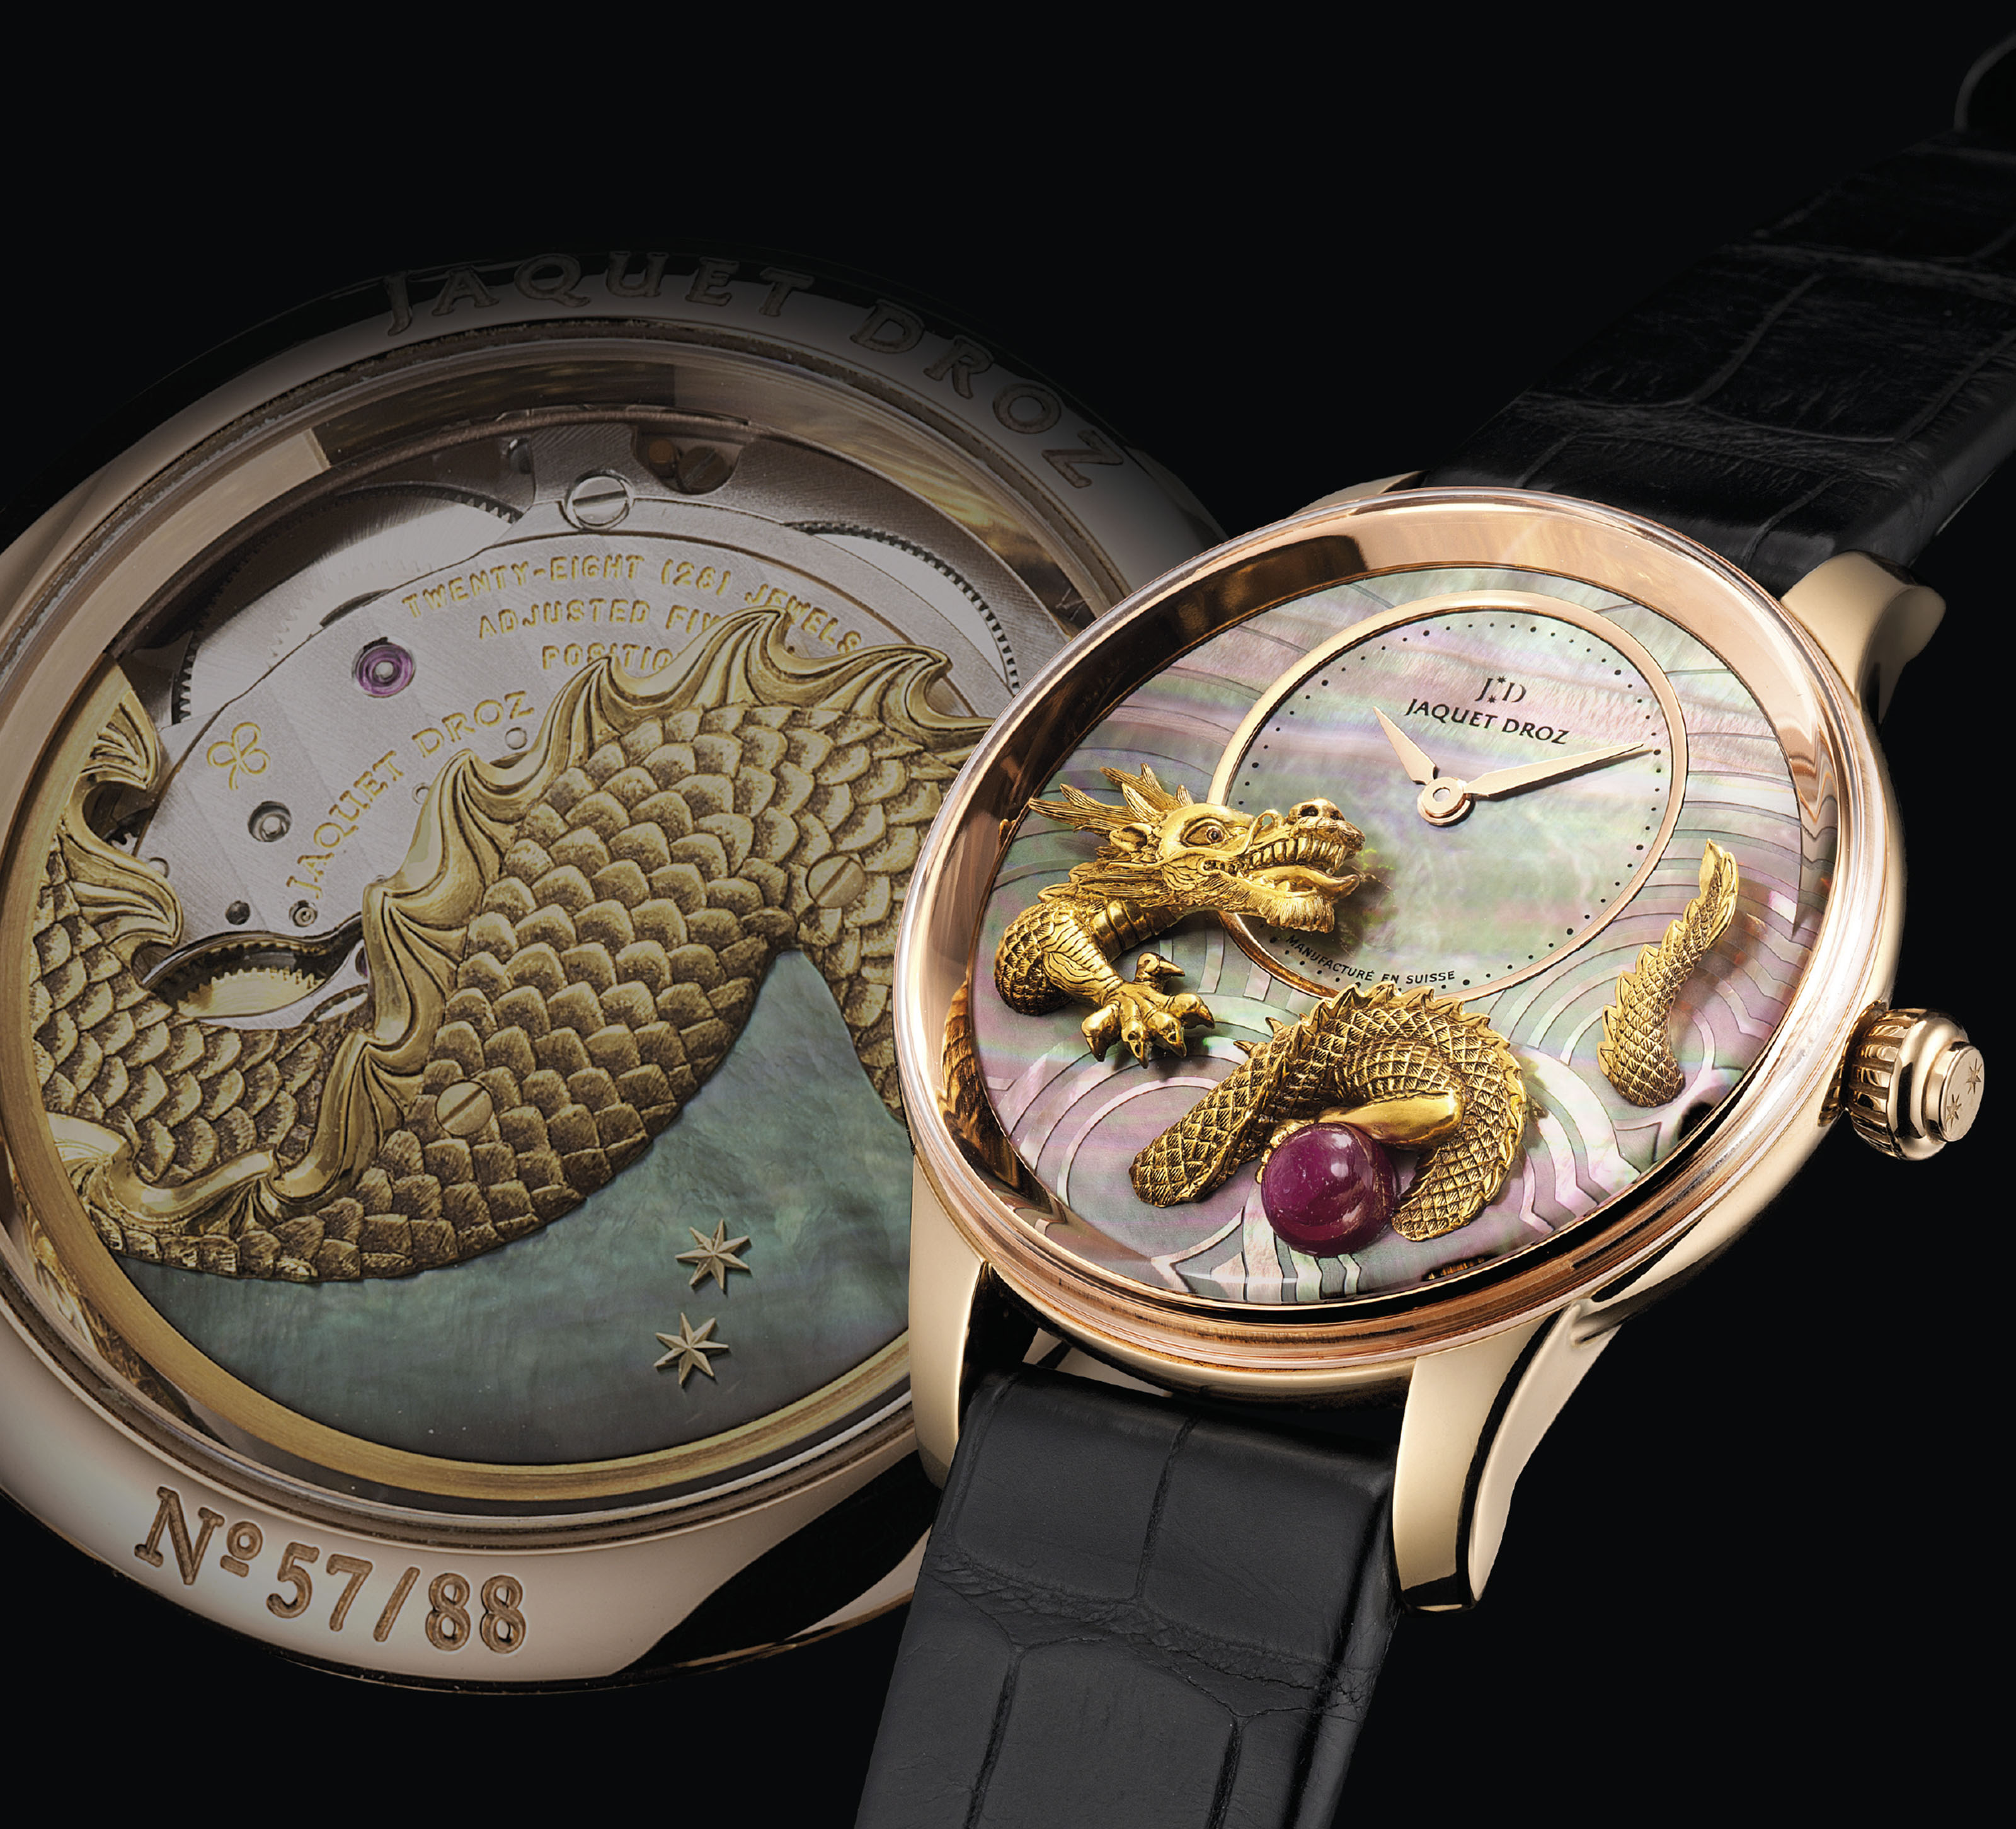 JAQUET DROZ. A VERY FINE AND R